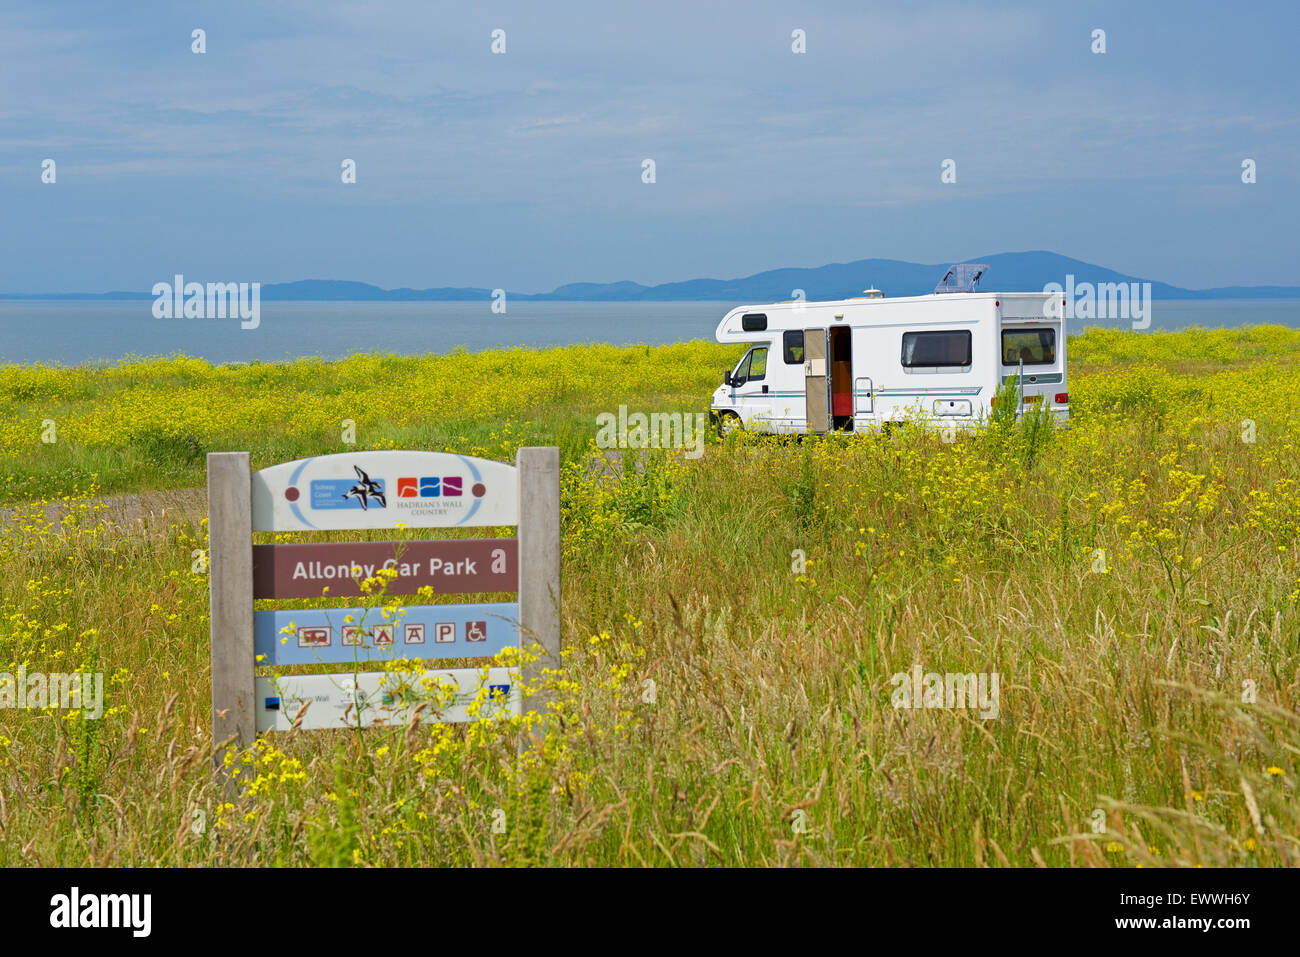 Motorhome parked in flowery dunes, with view of Solway Firth, at Allonby, West Cumbria, England UK - Stock Image